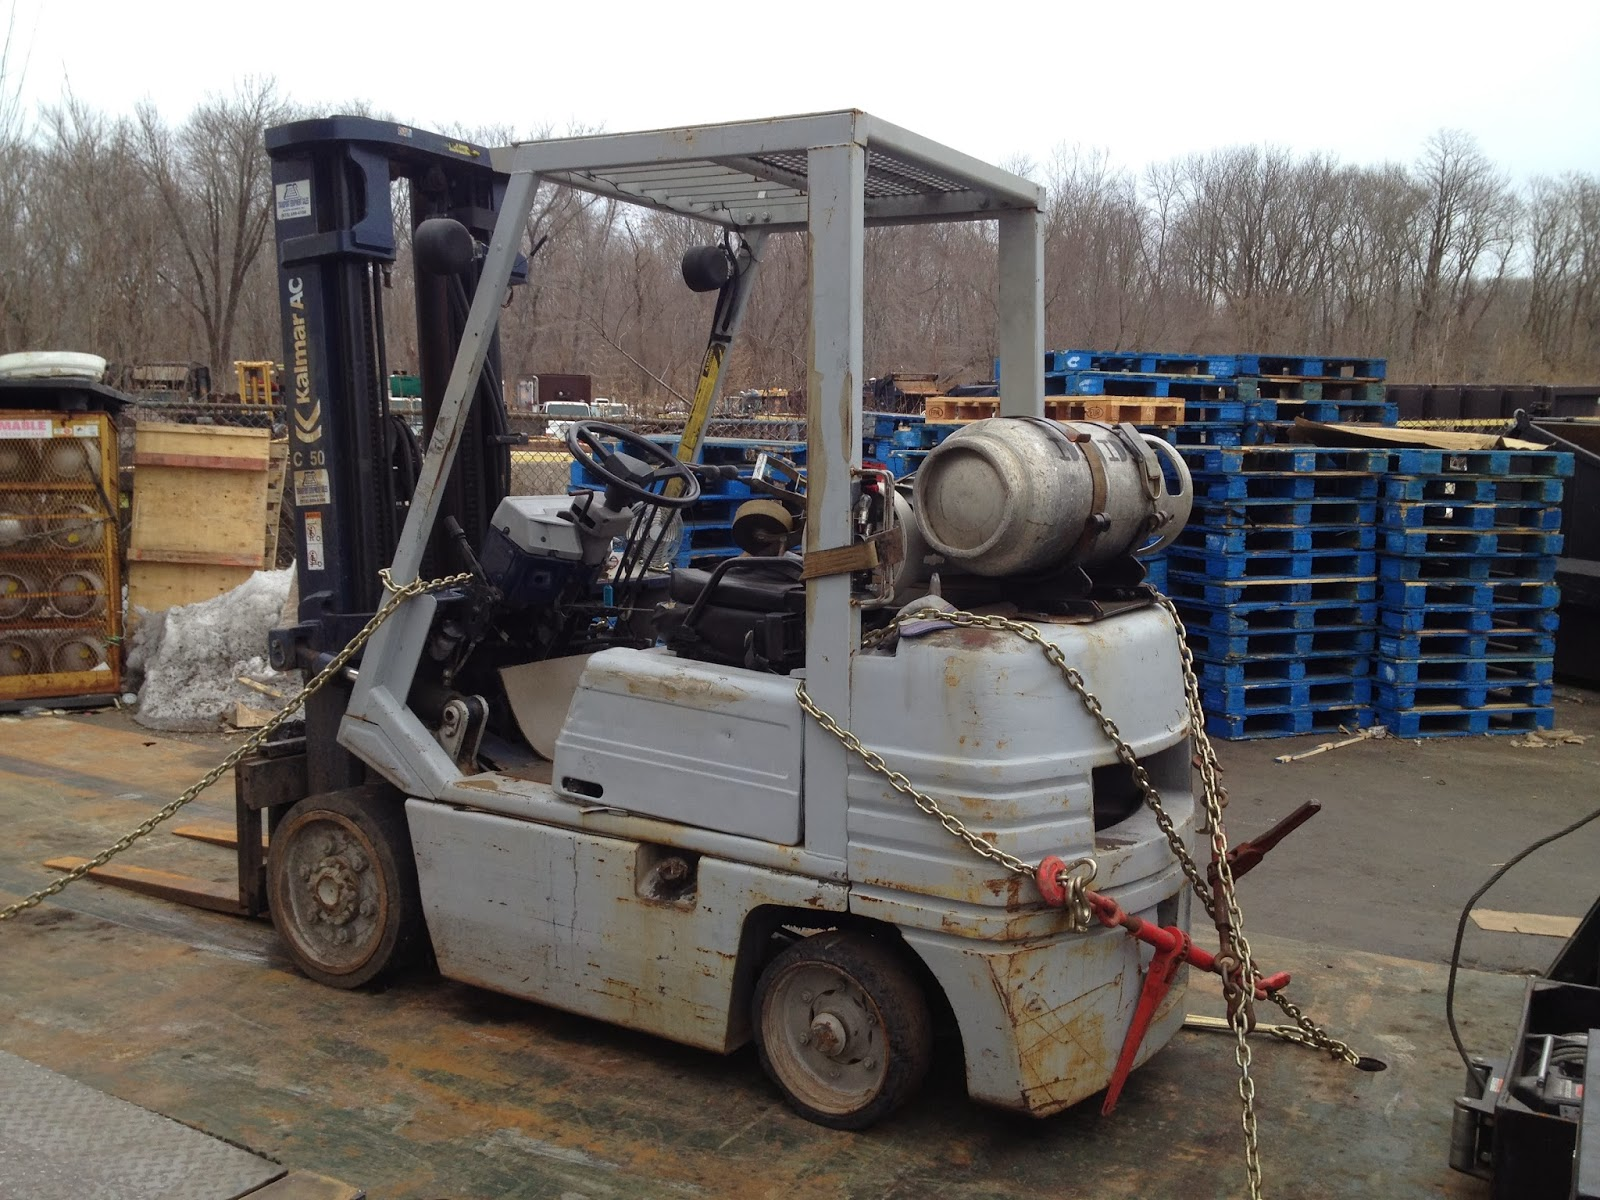 Scrapping A Forklift In Nj additionally Page3 additionally Color For Living Room Decorating Ideas together with Exterior Scaffolding in addition Aluminum Wood Patio Covers. on aluminum siding scrap prices